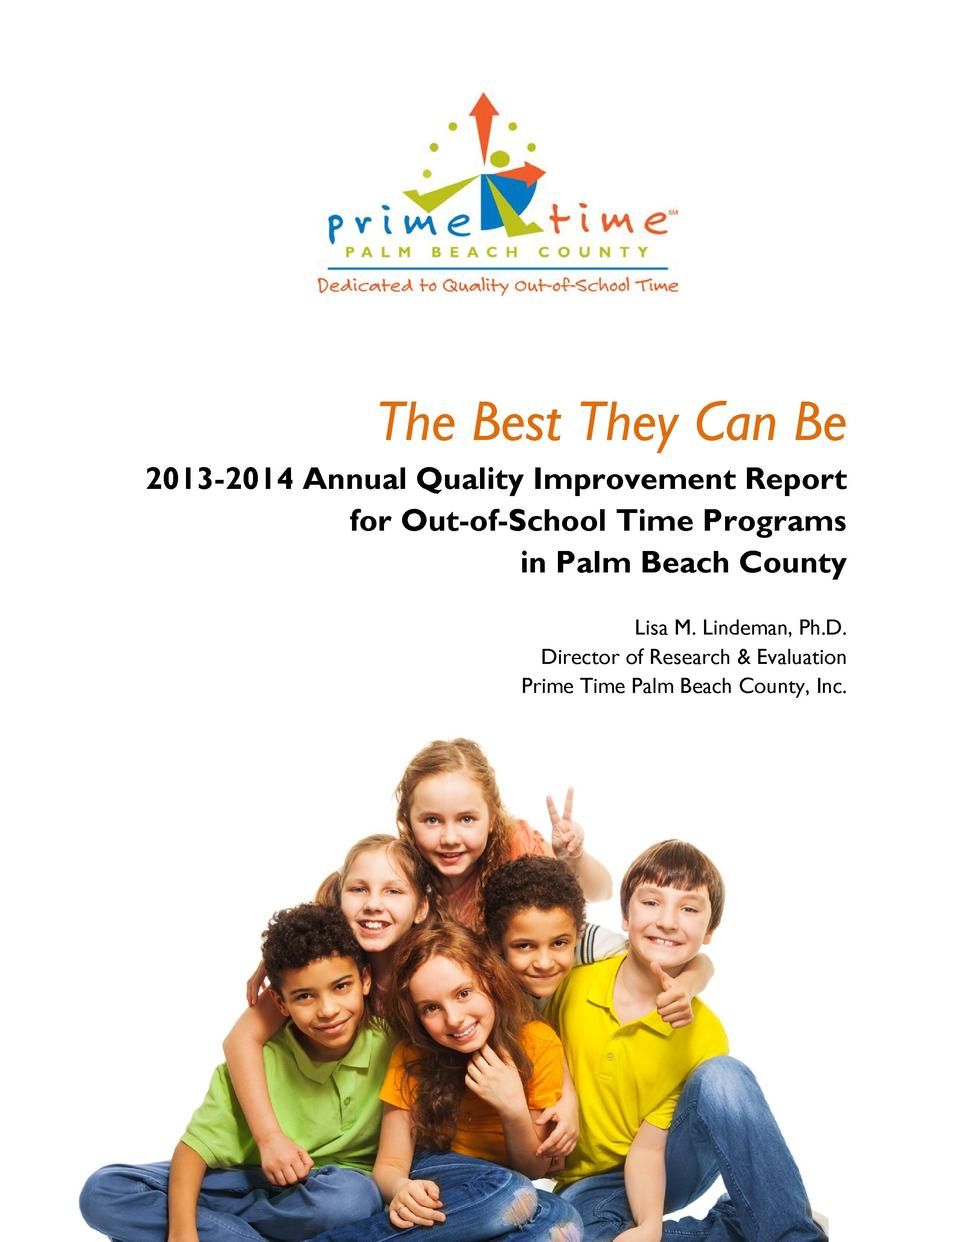 The Best They Can Be 2013-2014 Annual Quality Improvement Report for Out-of-School Time Programs in Palm Beach County Lisa...